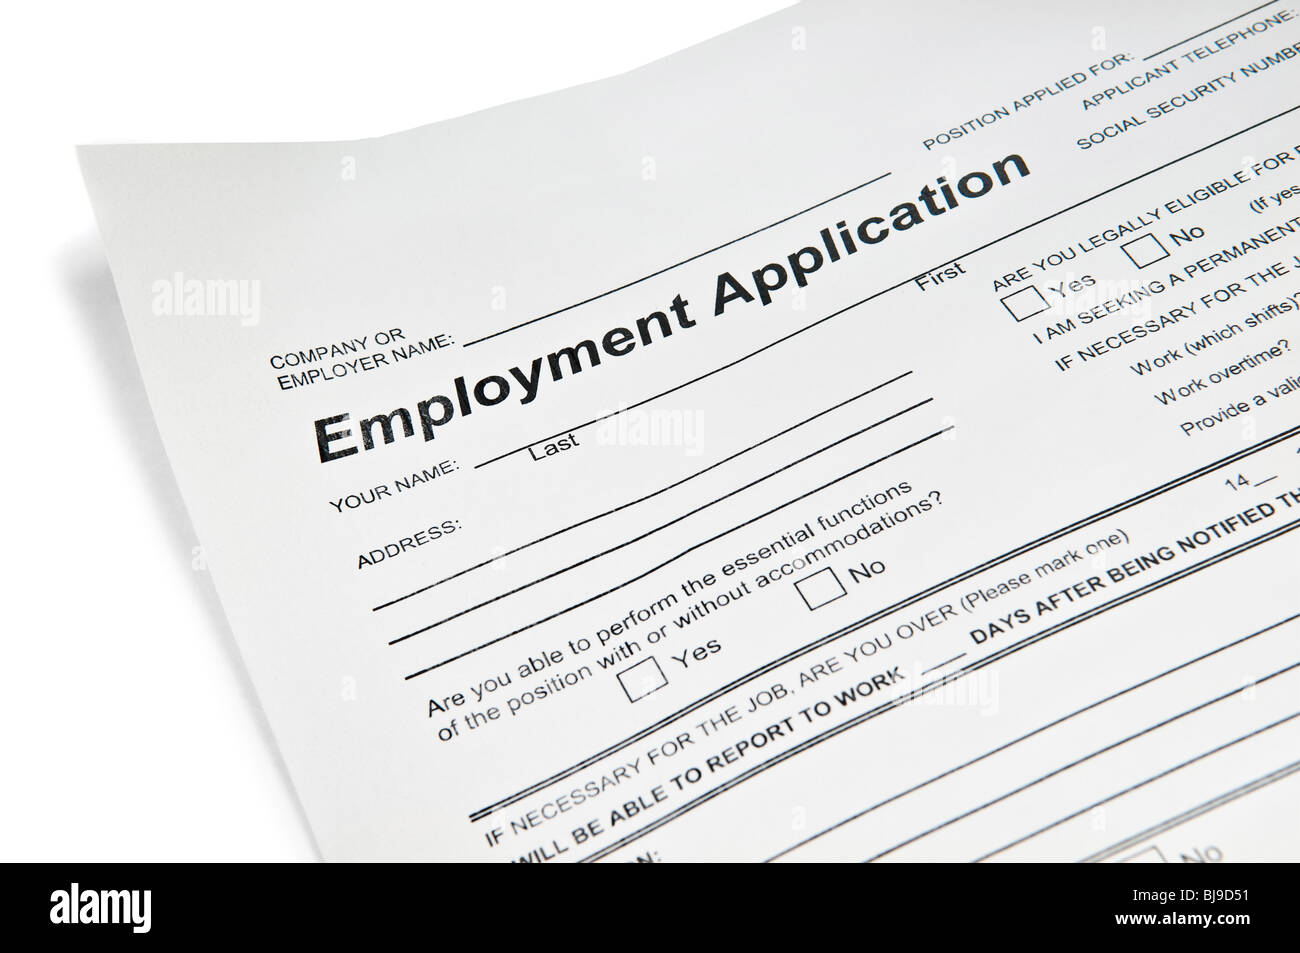 Application for employment over white - Stock Image